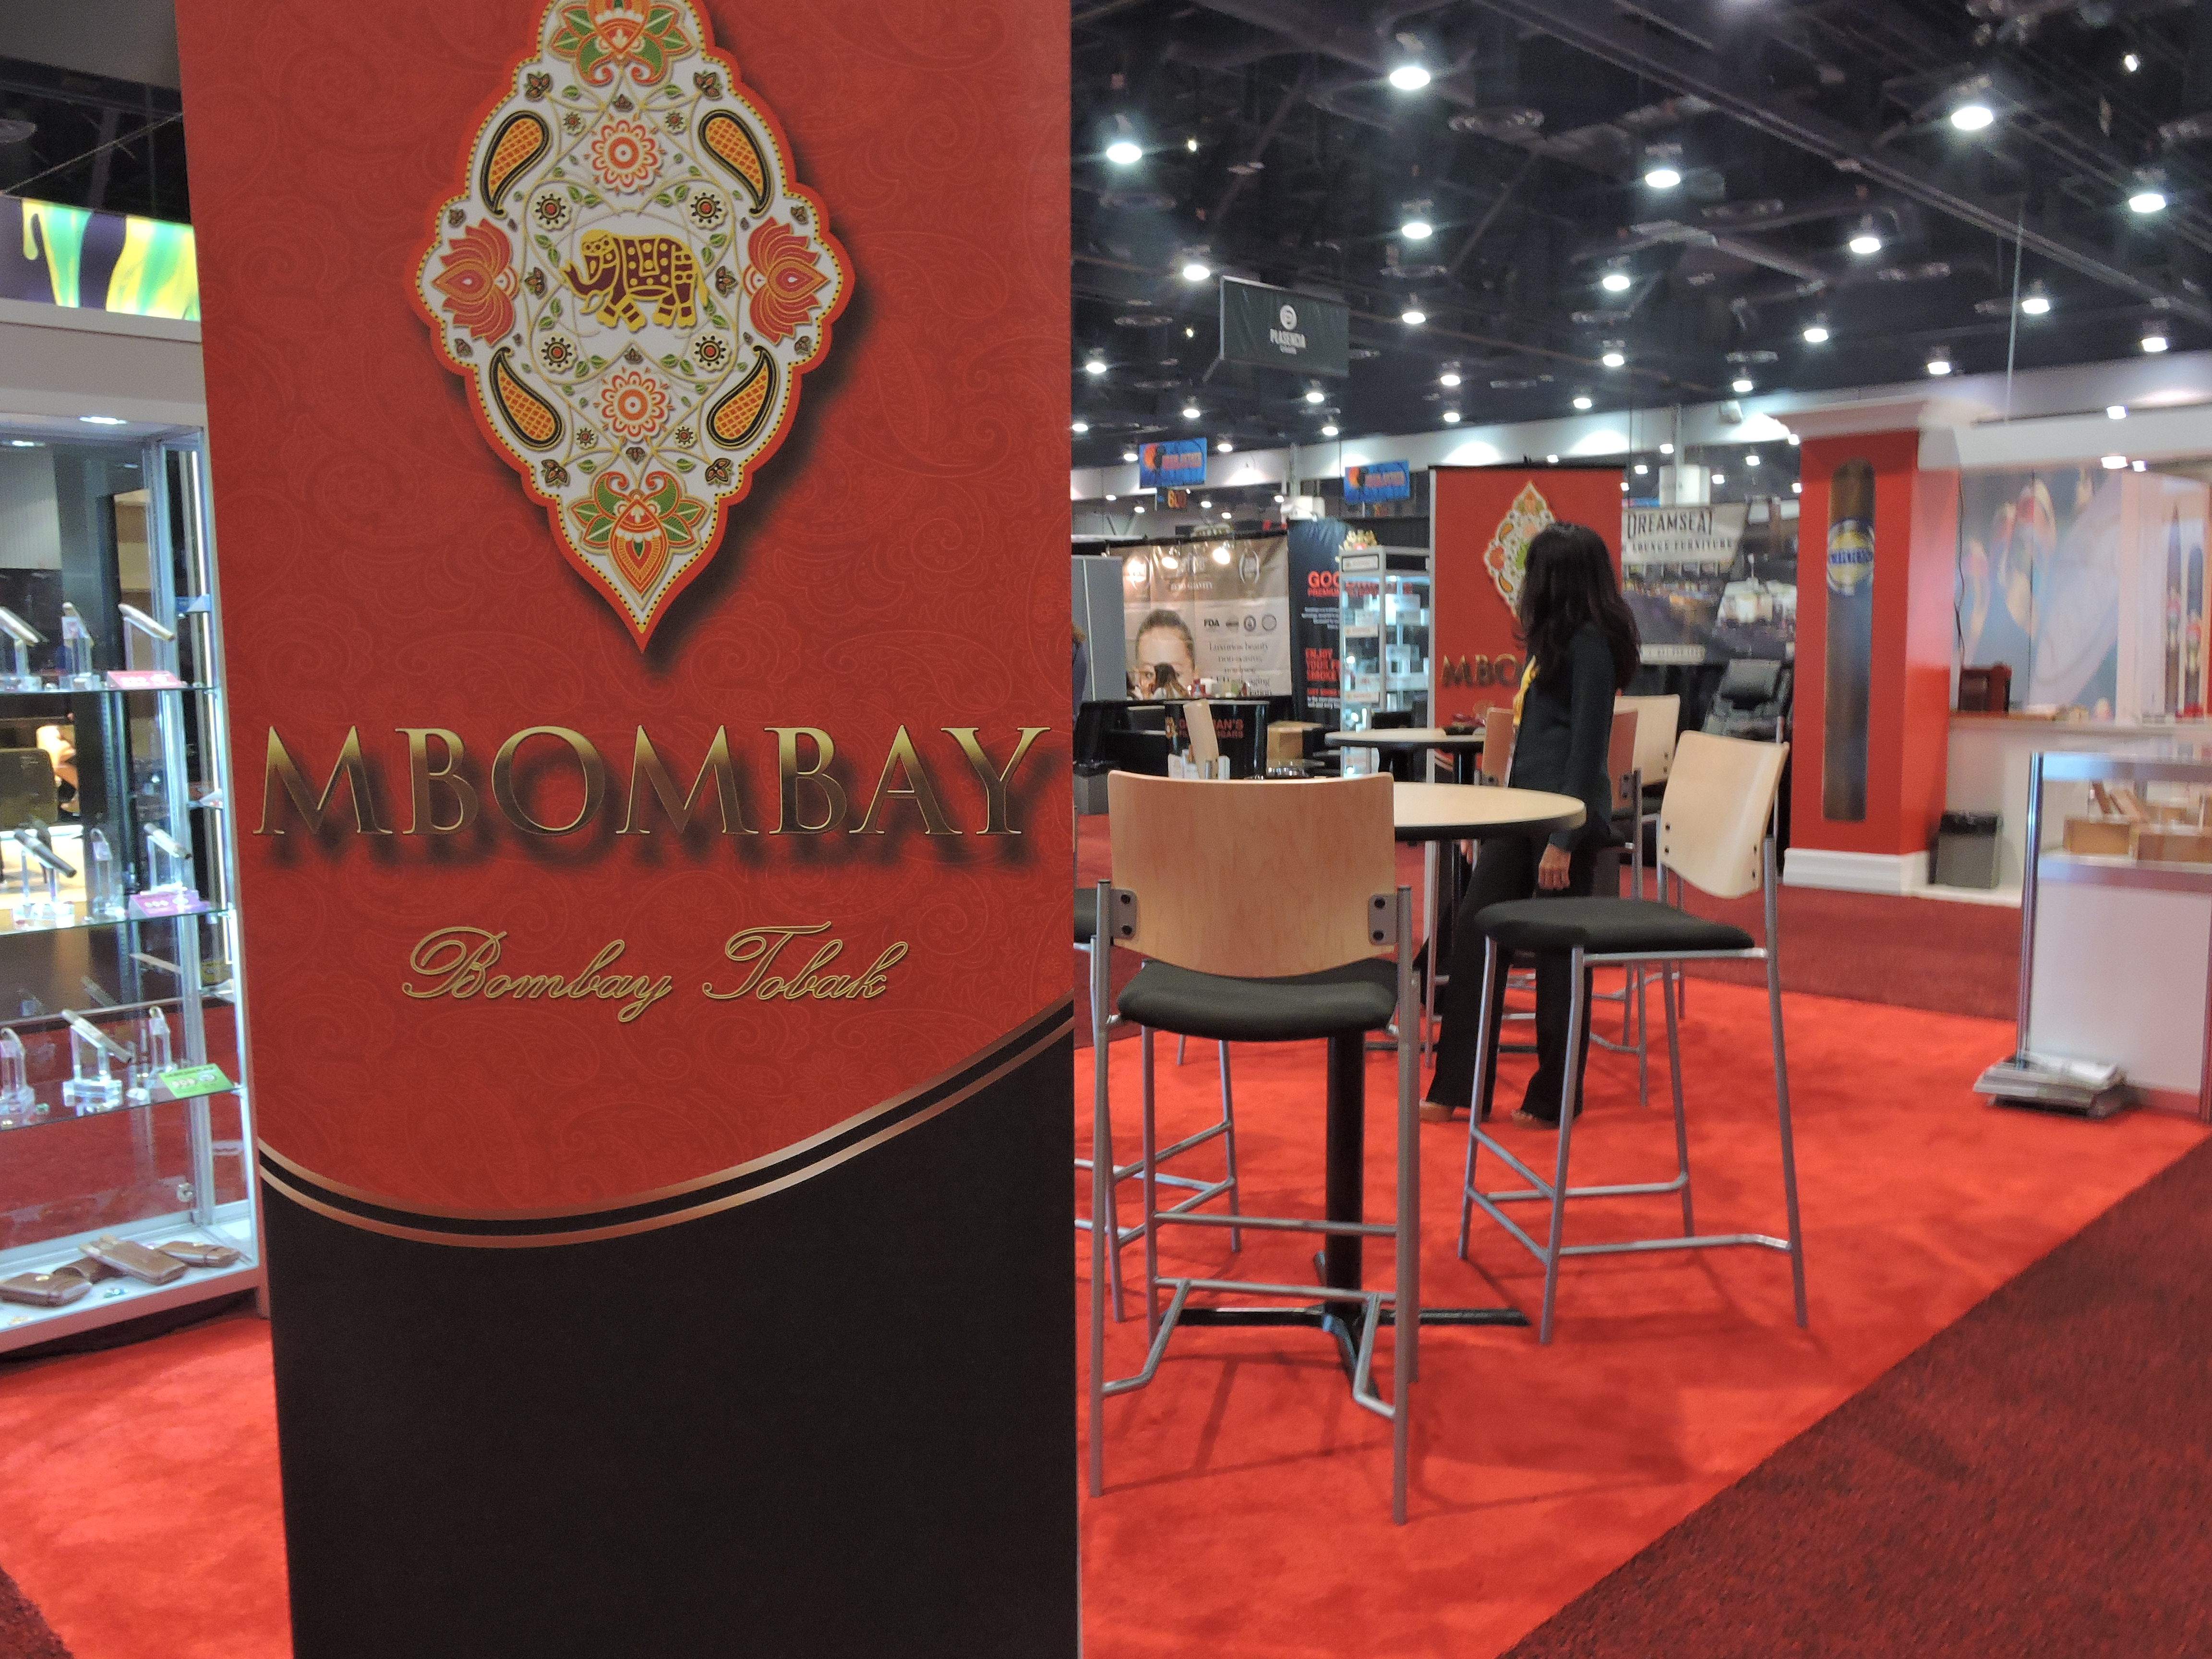 Feature Story: Spotlight on Bombay Tobak at the 2017 IPCPR Trade Show